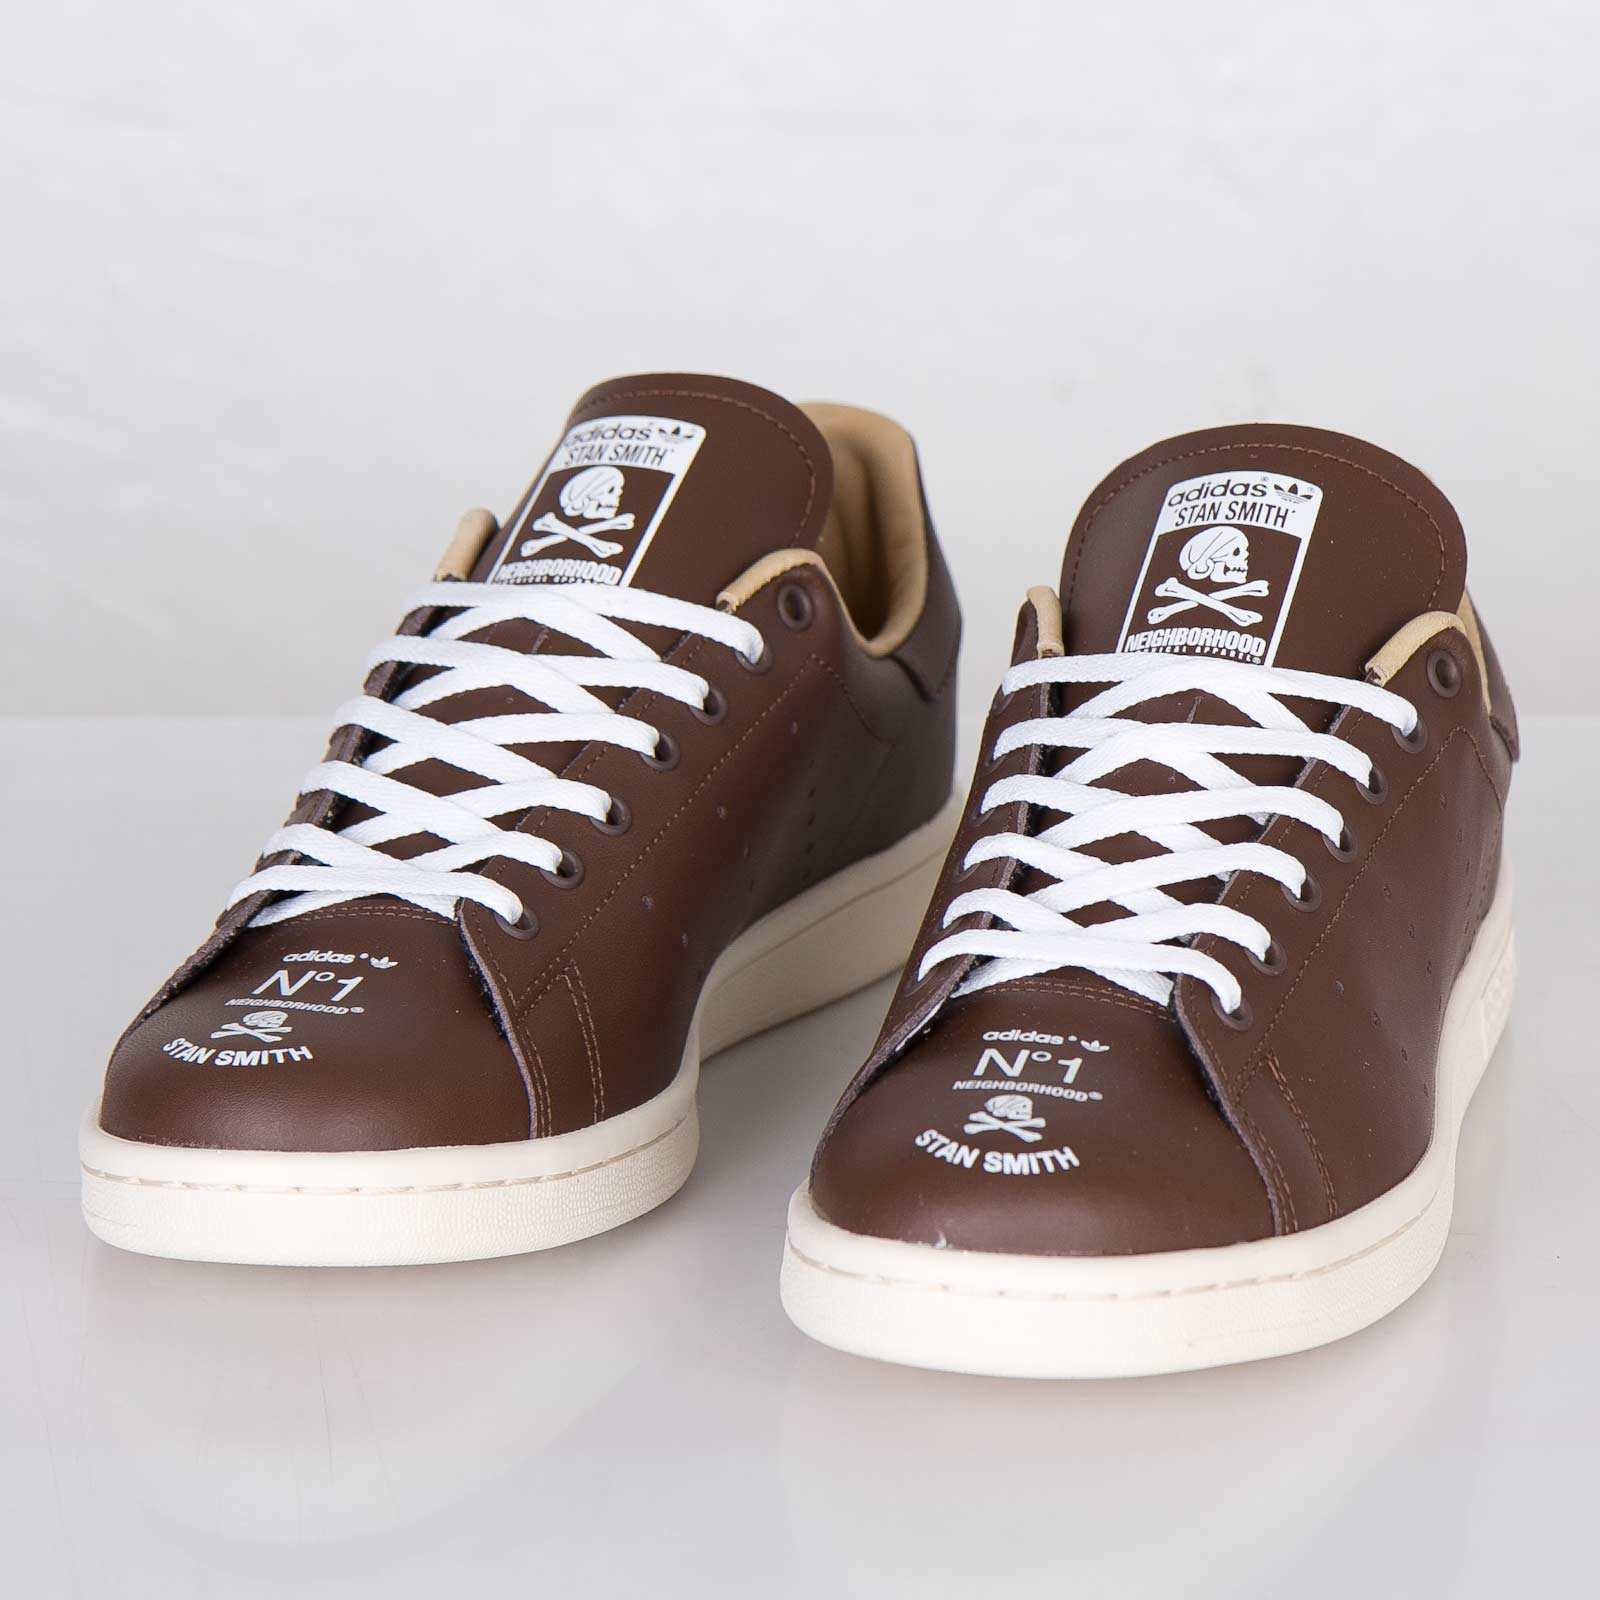 low priced 1a671 d445f adidas Stan Smith - Neighborhood adidas Stan Smith - Neighborhood ...